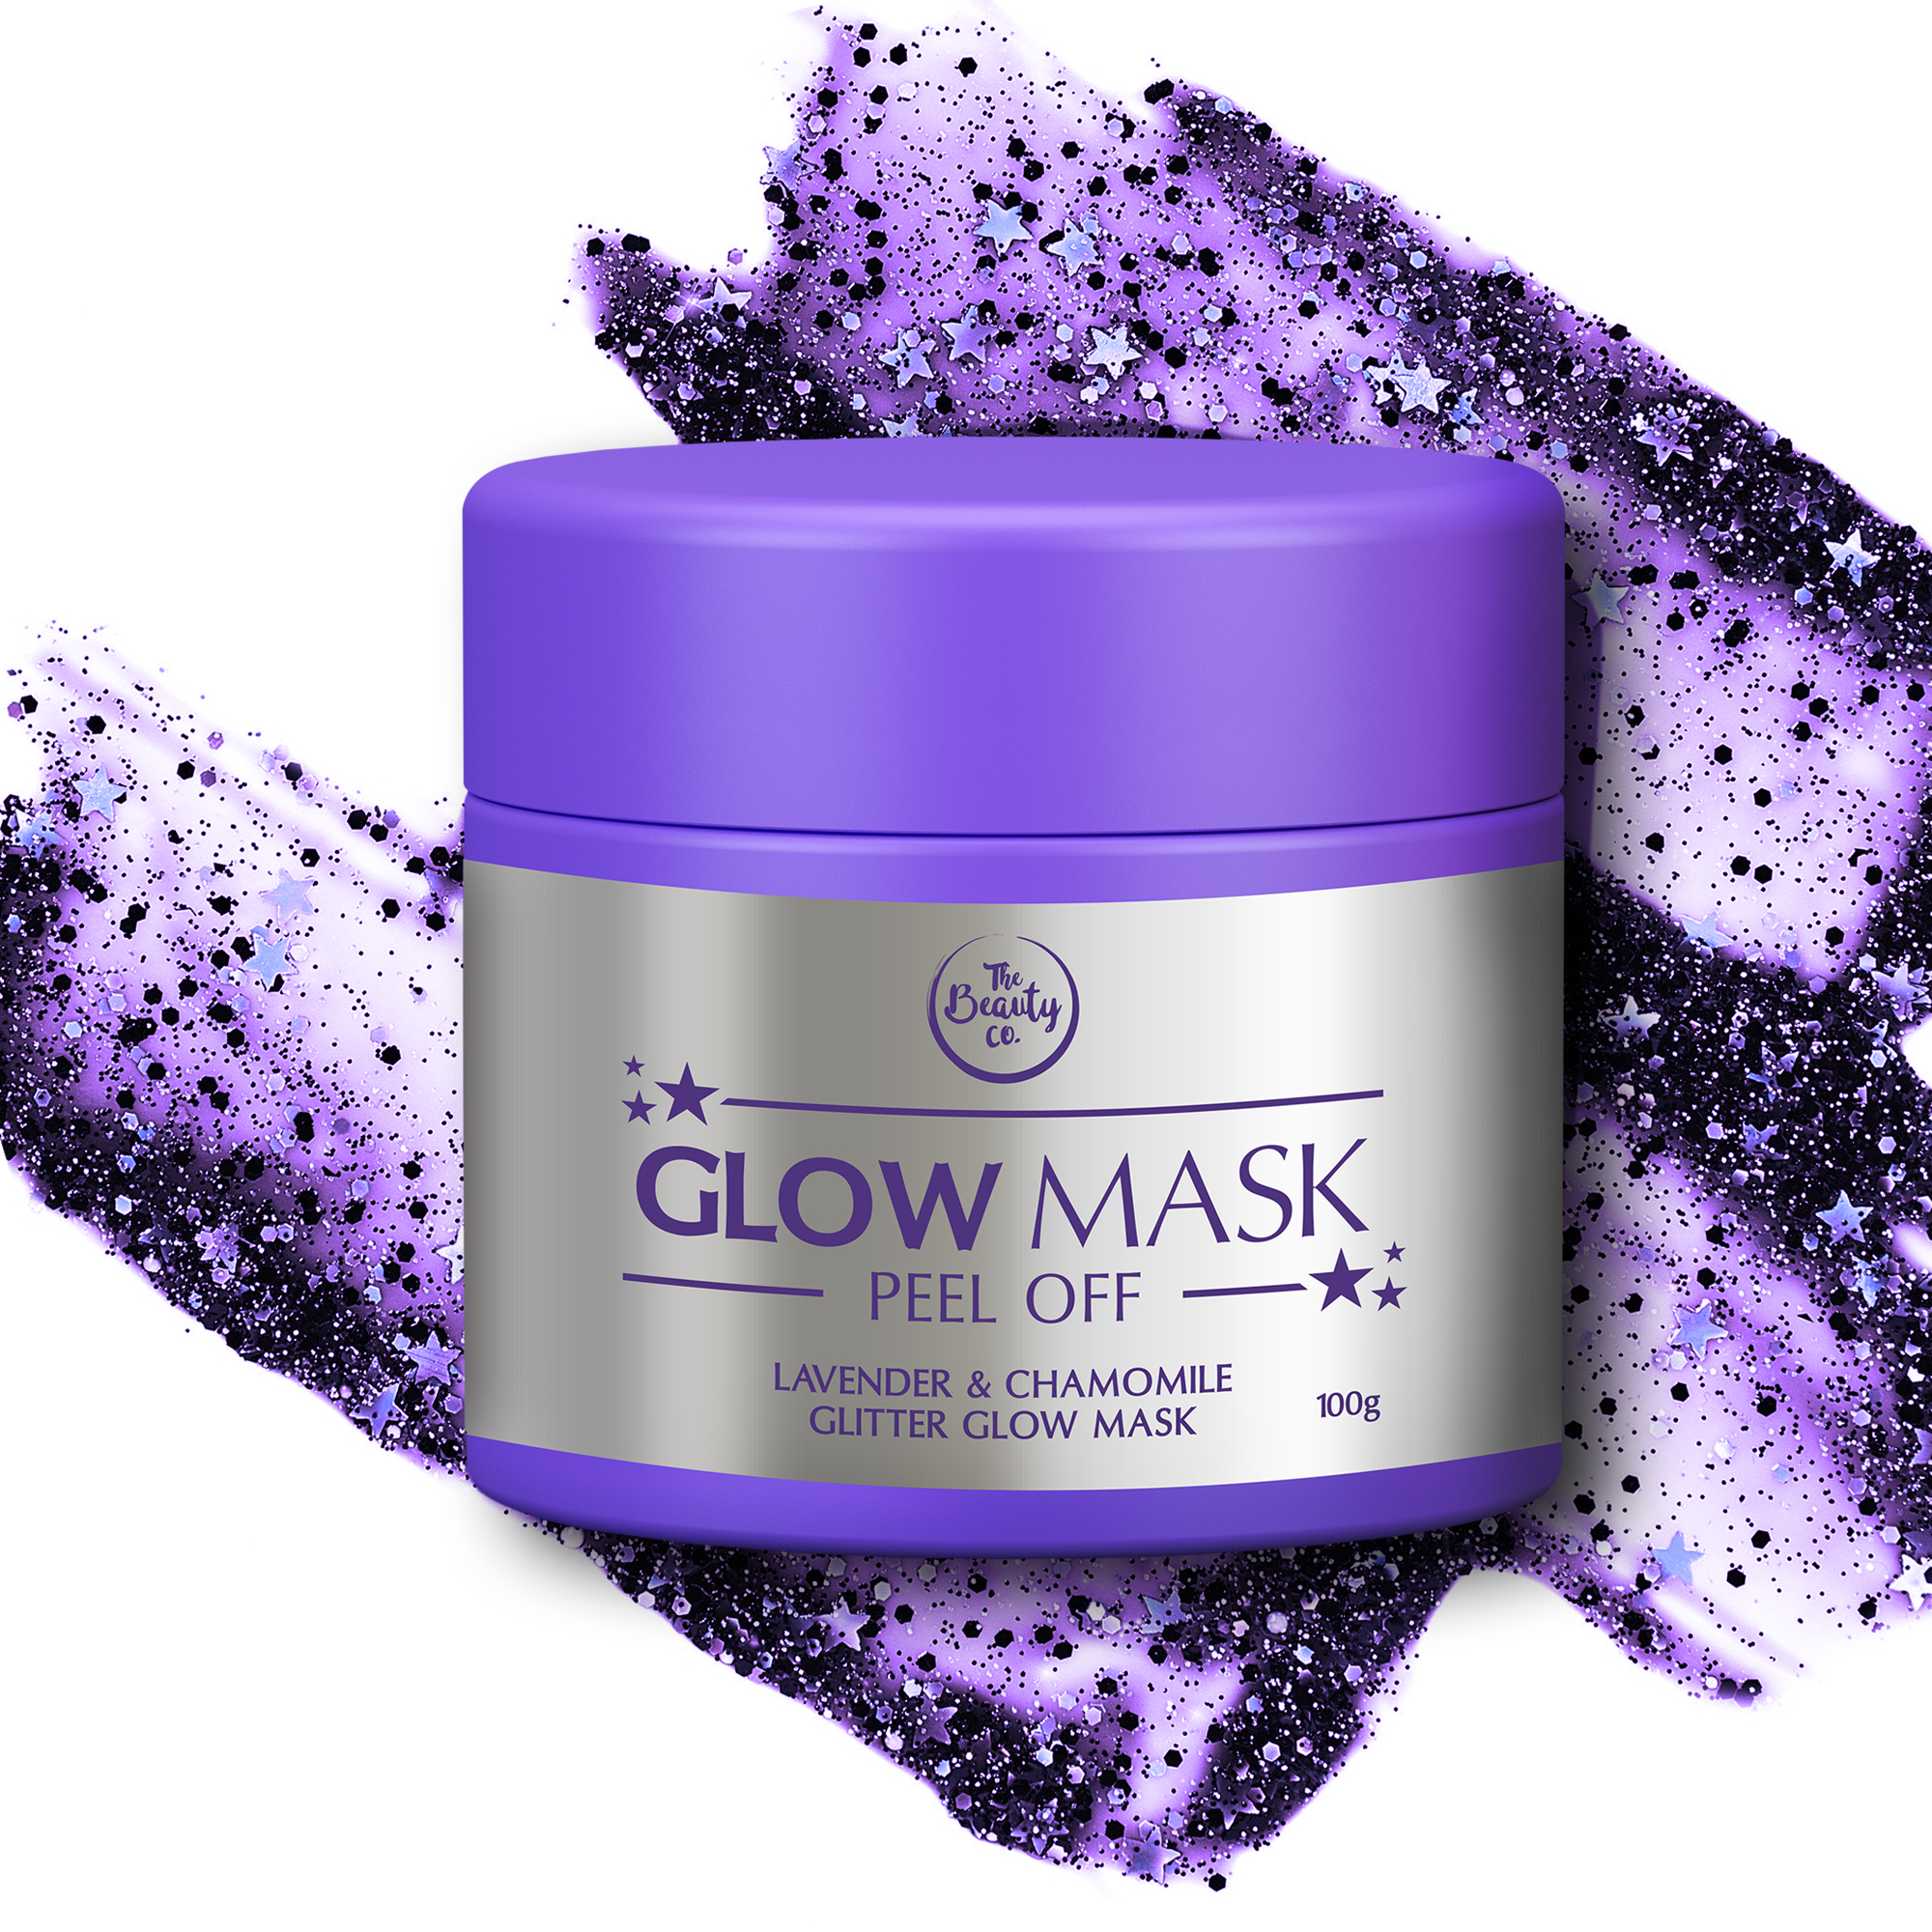 The Beauty Co. Lavender and Chamomile Glitter Glow Mask_INR 899